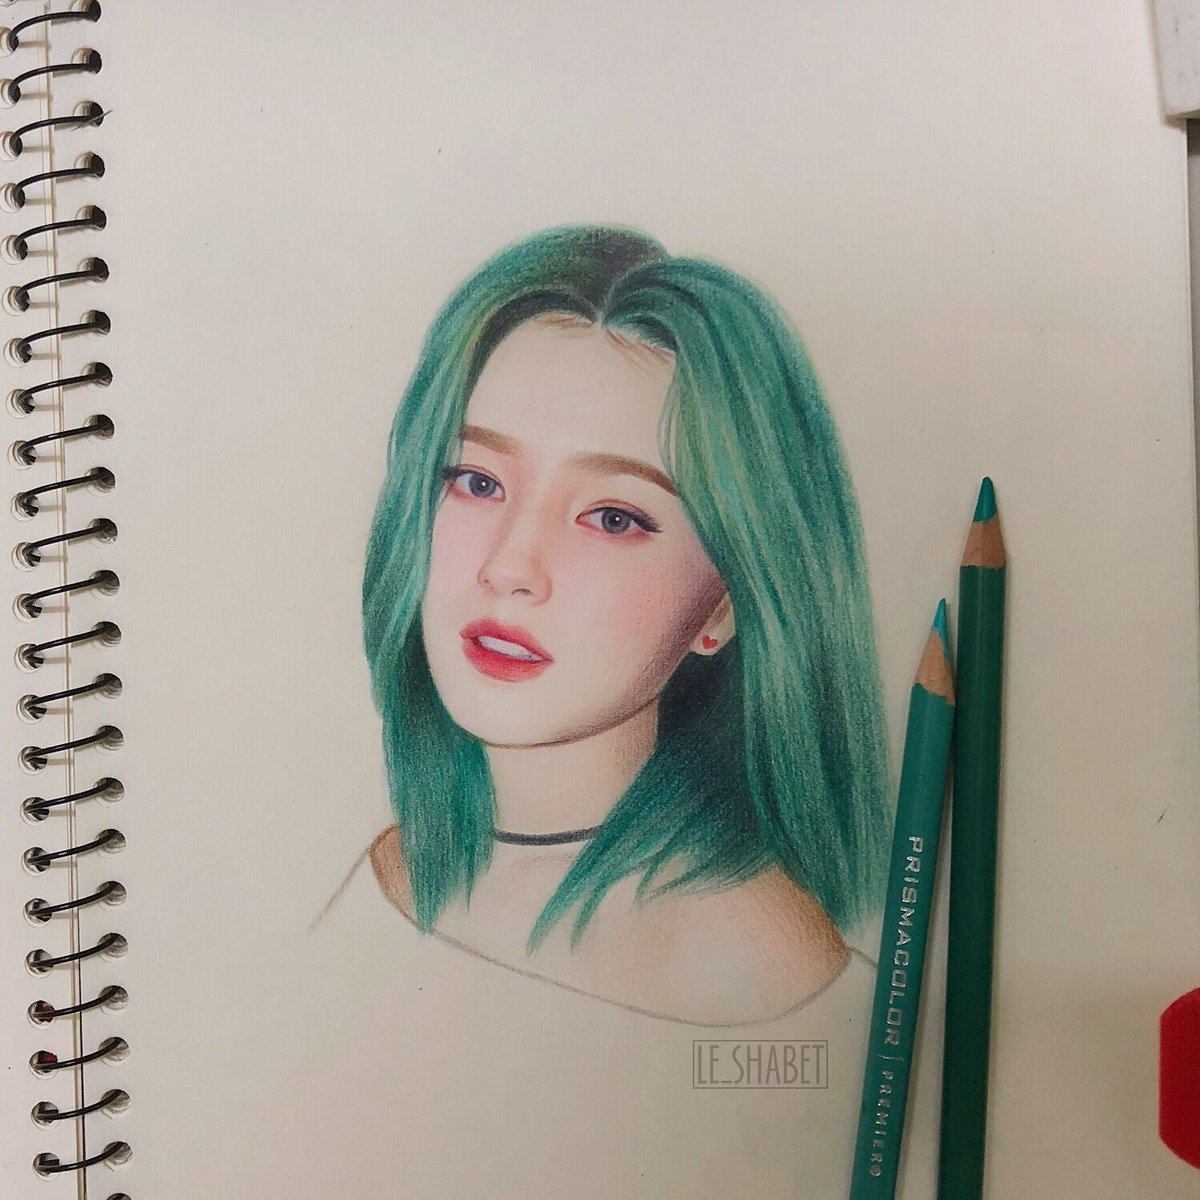 Momoland Nancy fan art BAAM~ #momoland #nancy #momolandfanart #nancyfanart